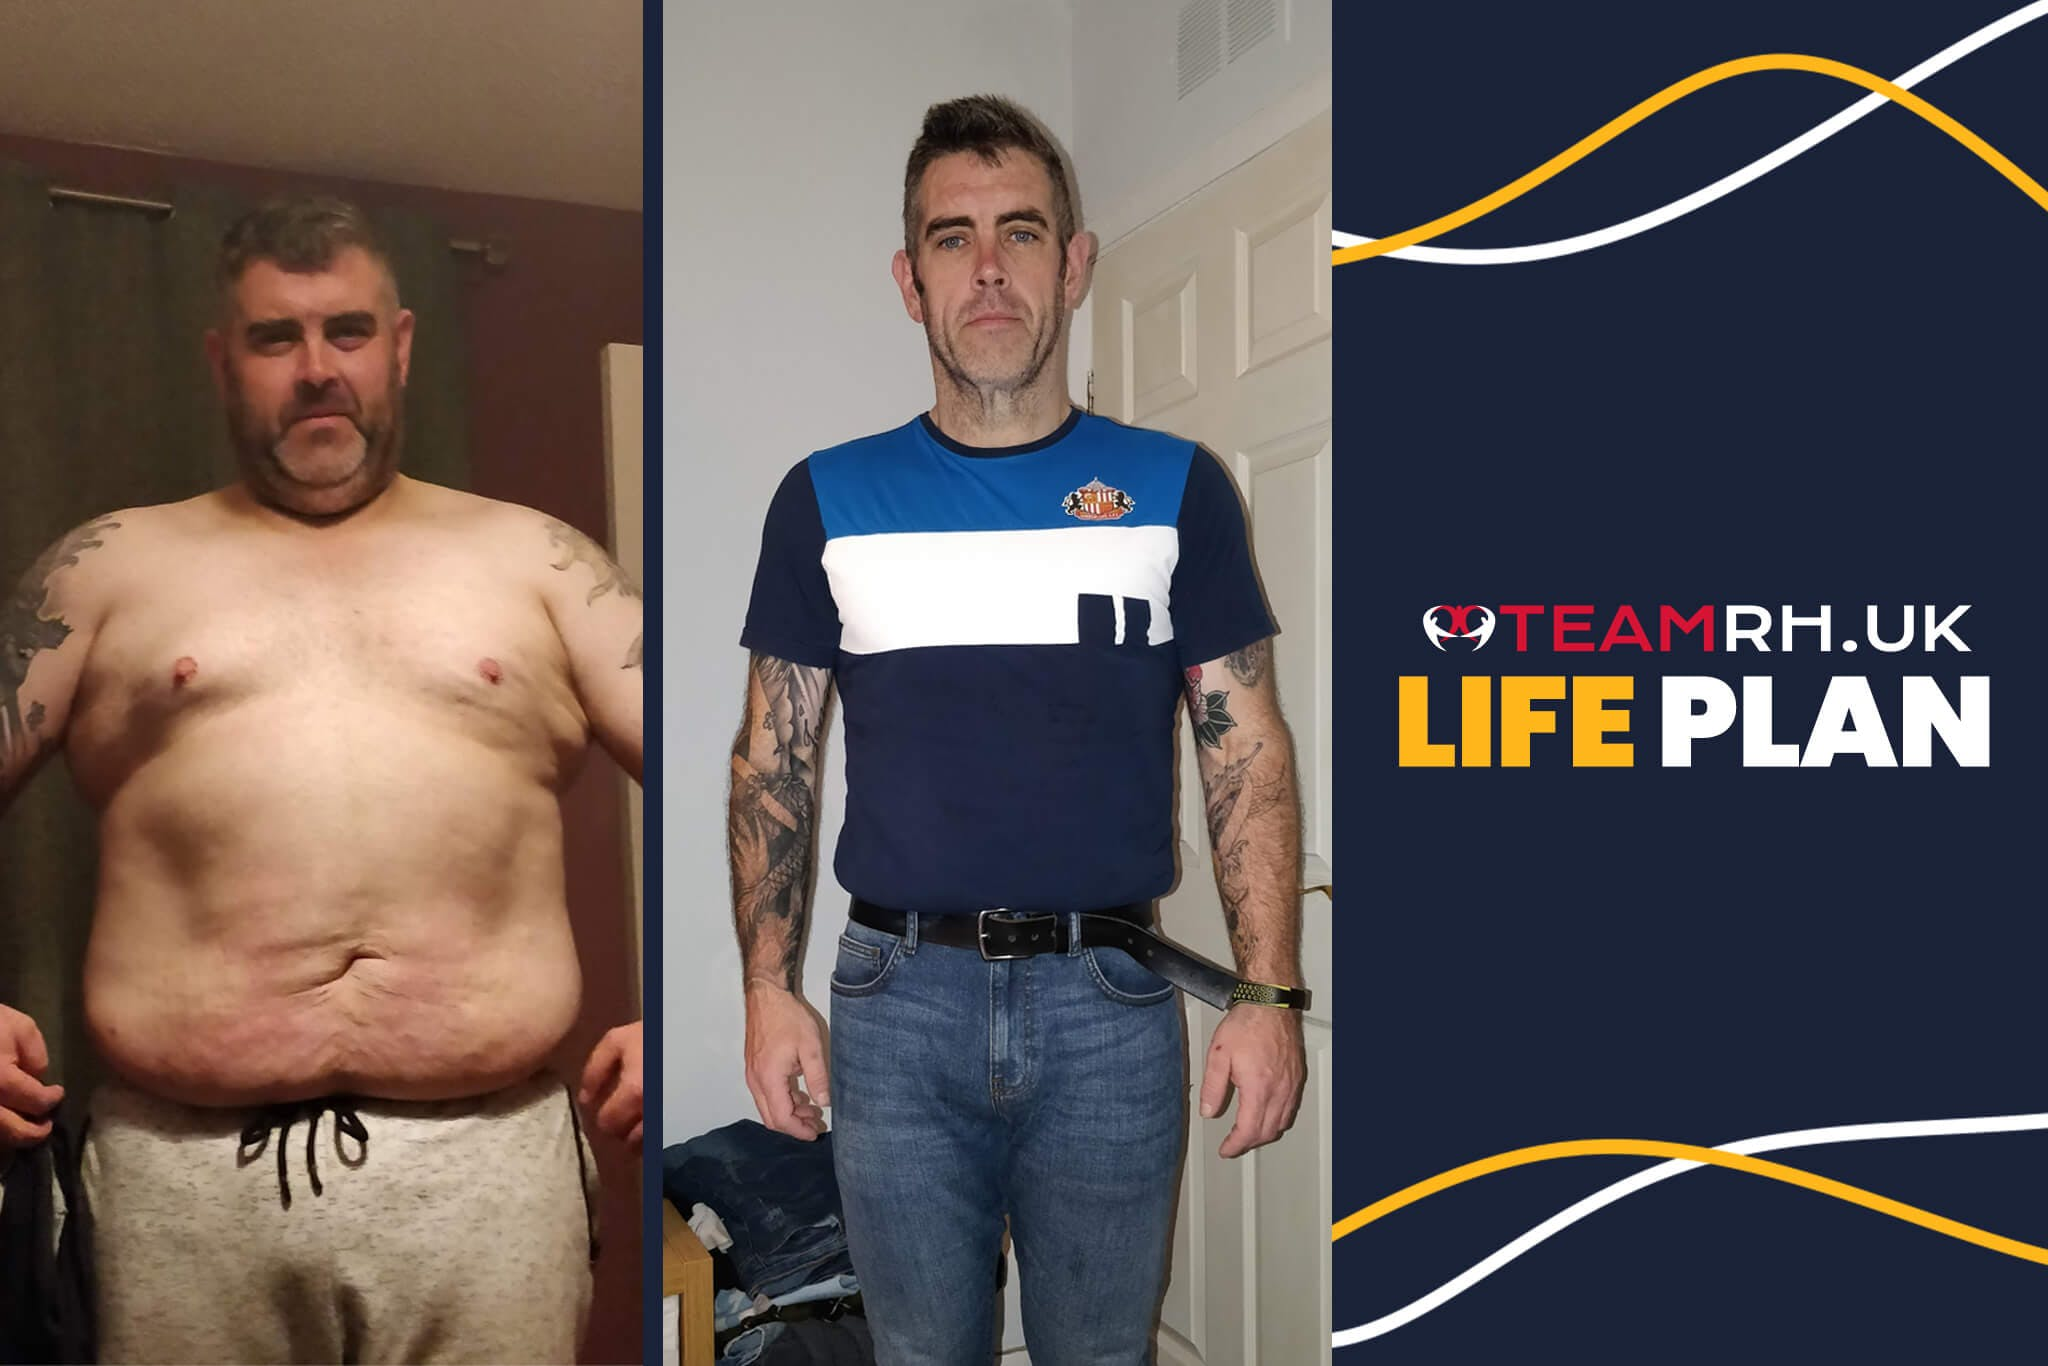 find-out-how-john-lost-just-over-115lbs